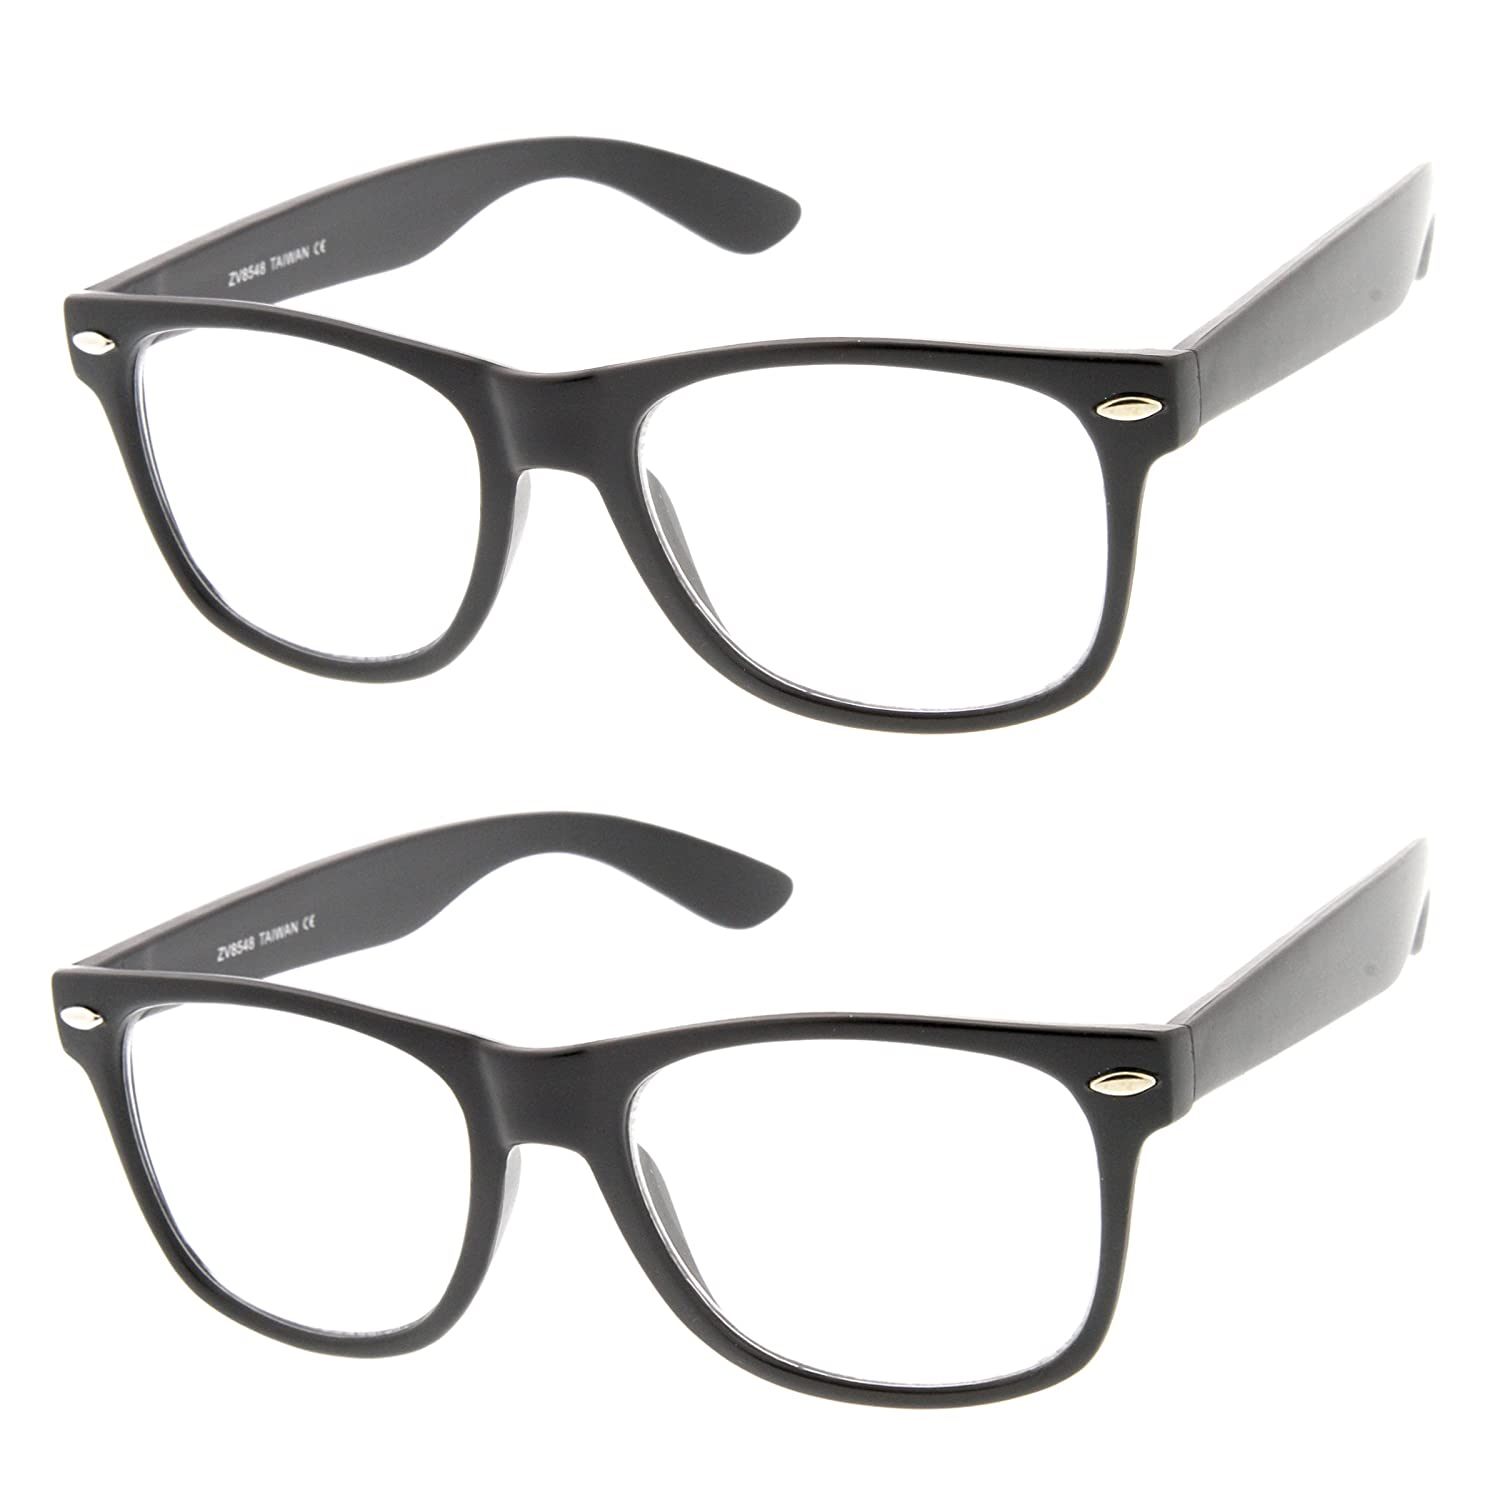 5e0a35b8c82e Amazon.com  Flat Matte Classic Geek Nerd Glasses Horn Rimmed Eyeglasses  UV400 Clear Lens (2-Pack)  Shoes